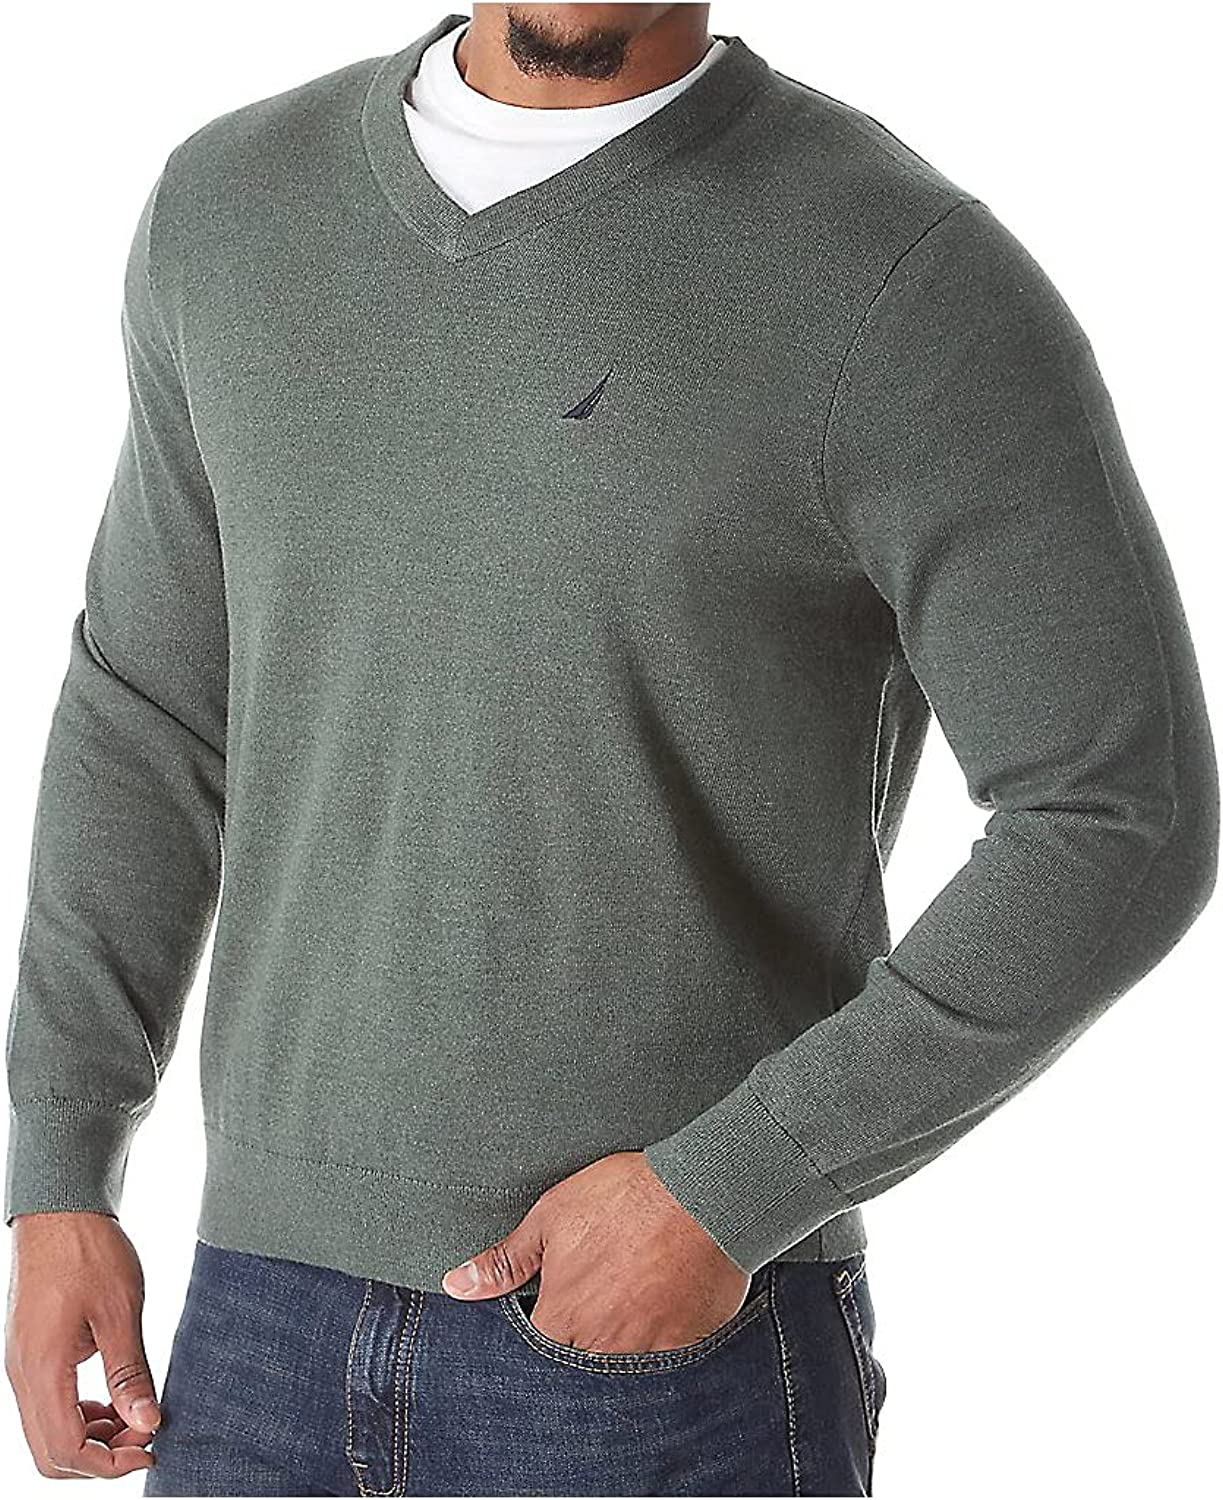 Nautica Men's Big and Tall Long Sleeve V Neck Jersey Sweater